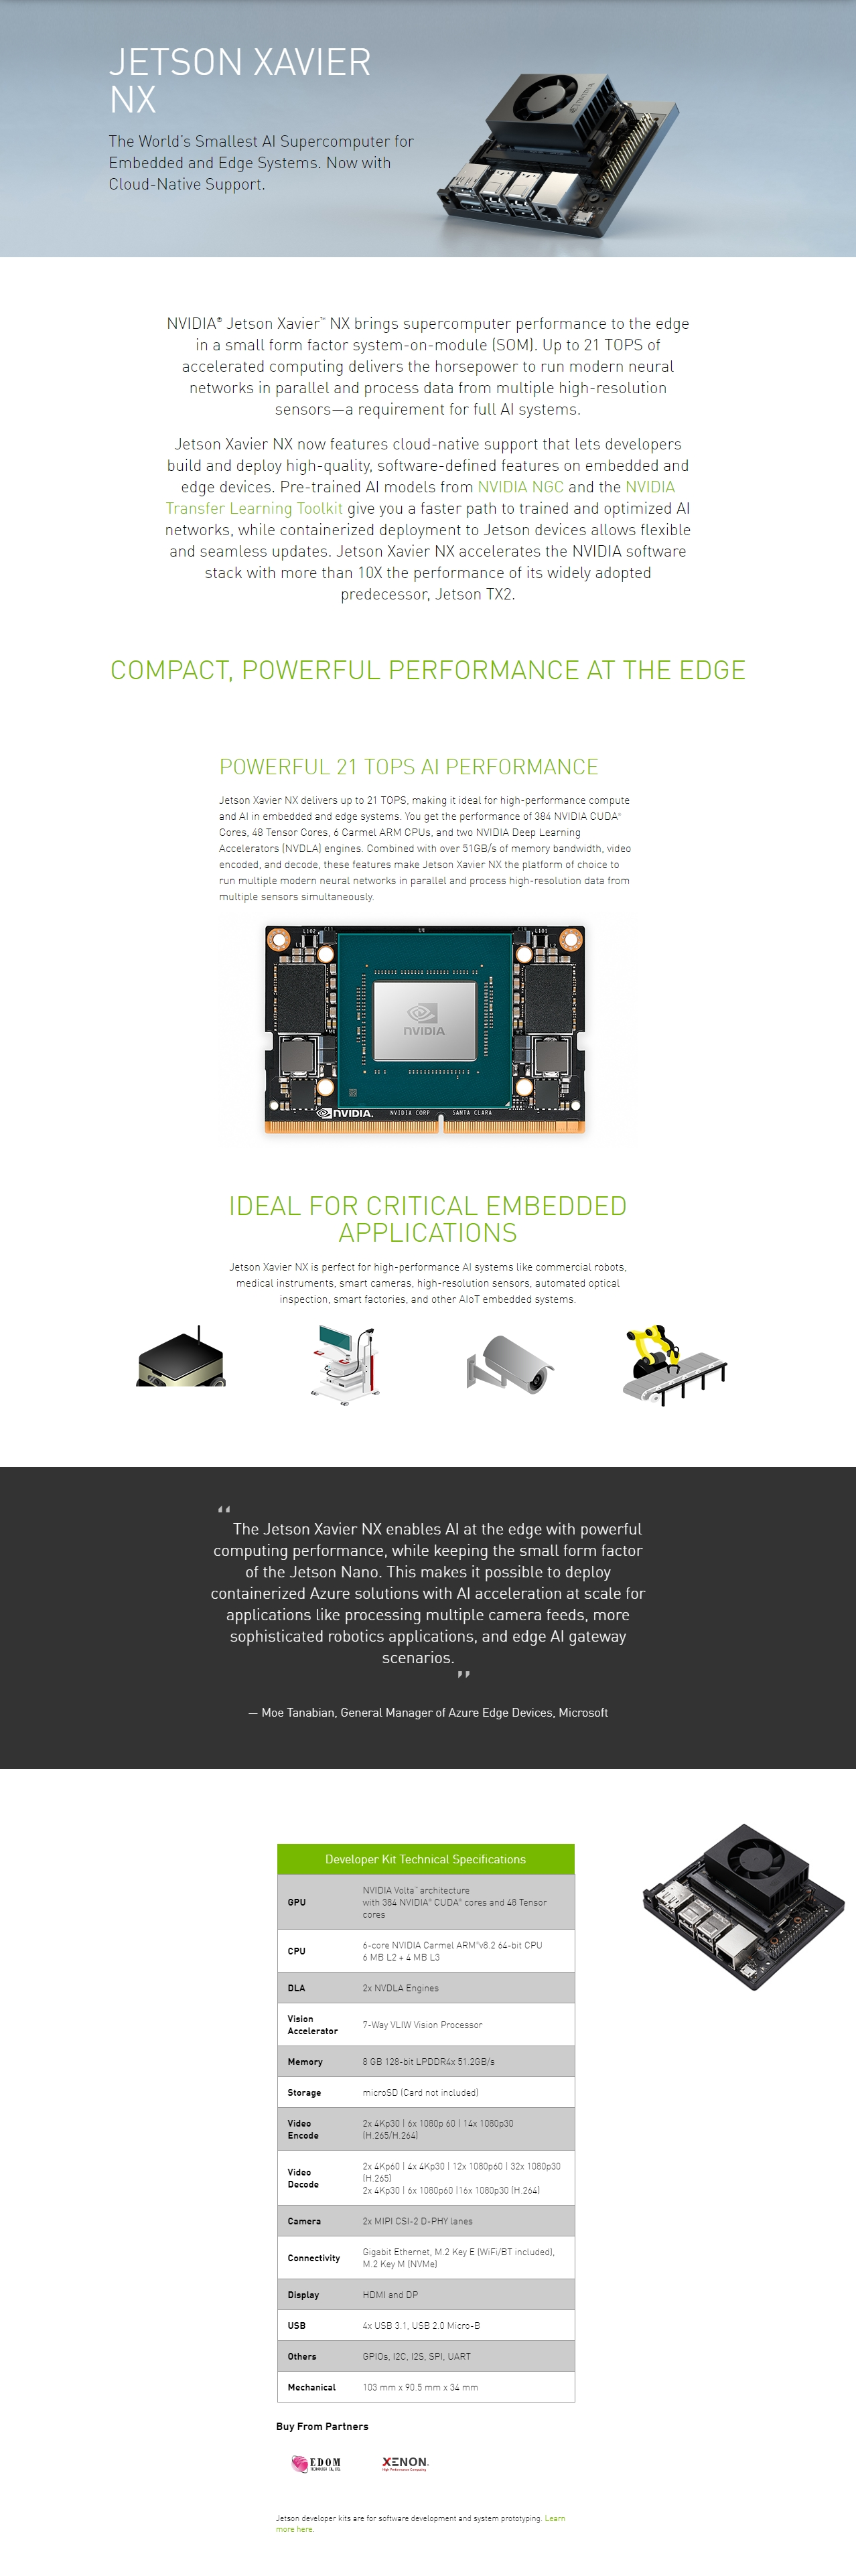 A large marketing image providing additional information about the product NVIDIA Jetson Xavier NX Developer Kit - Additional alt info not provided